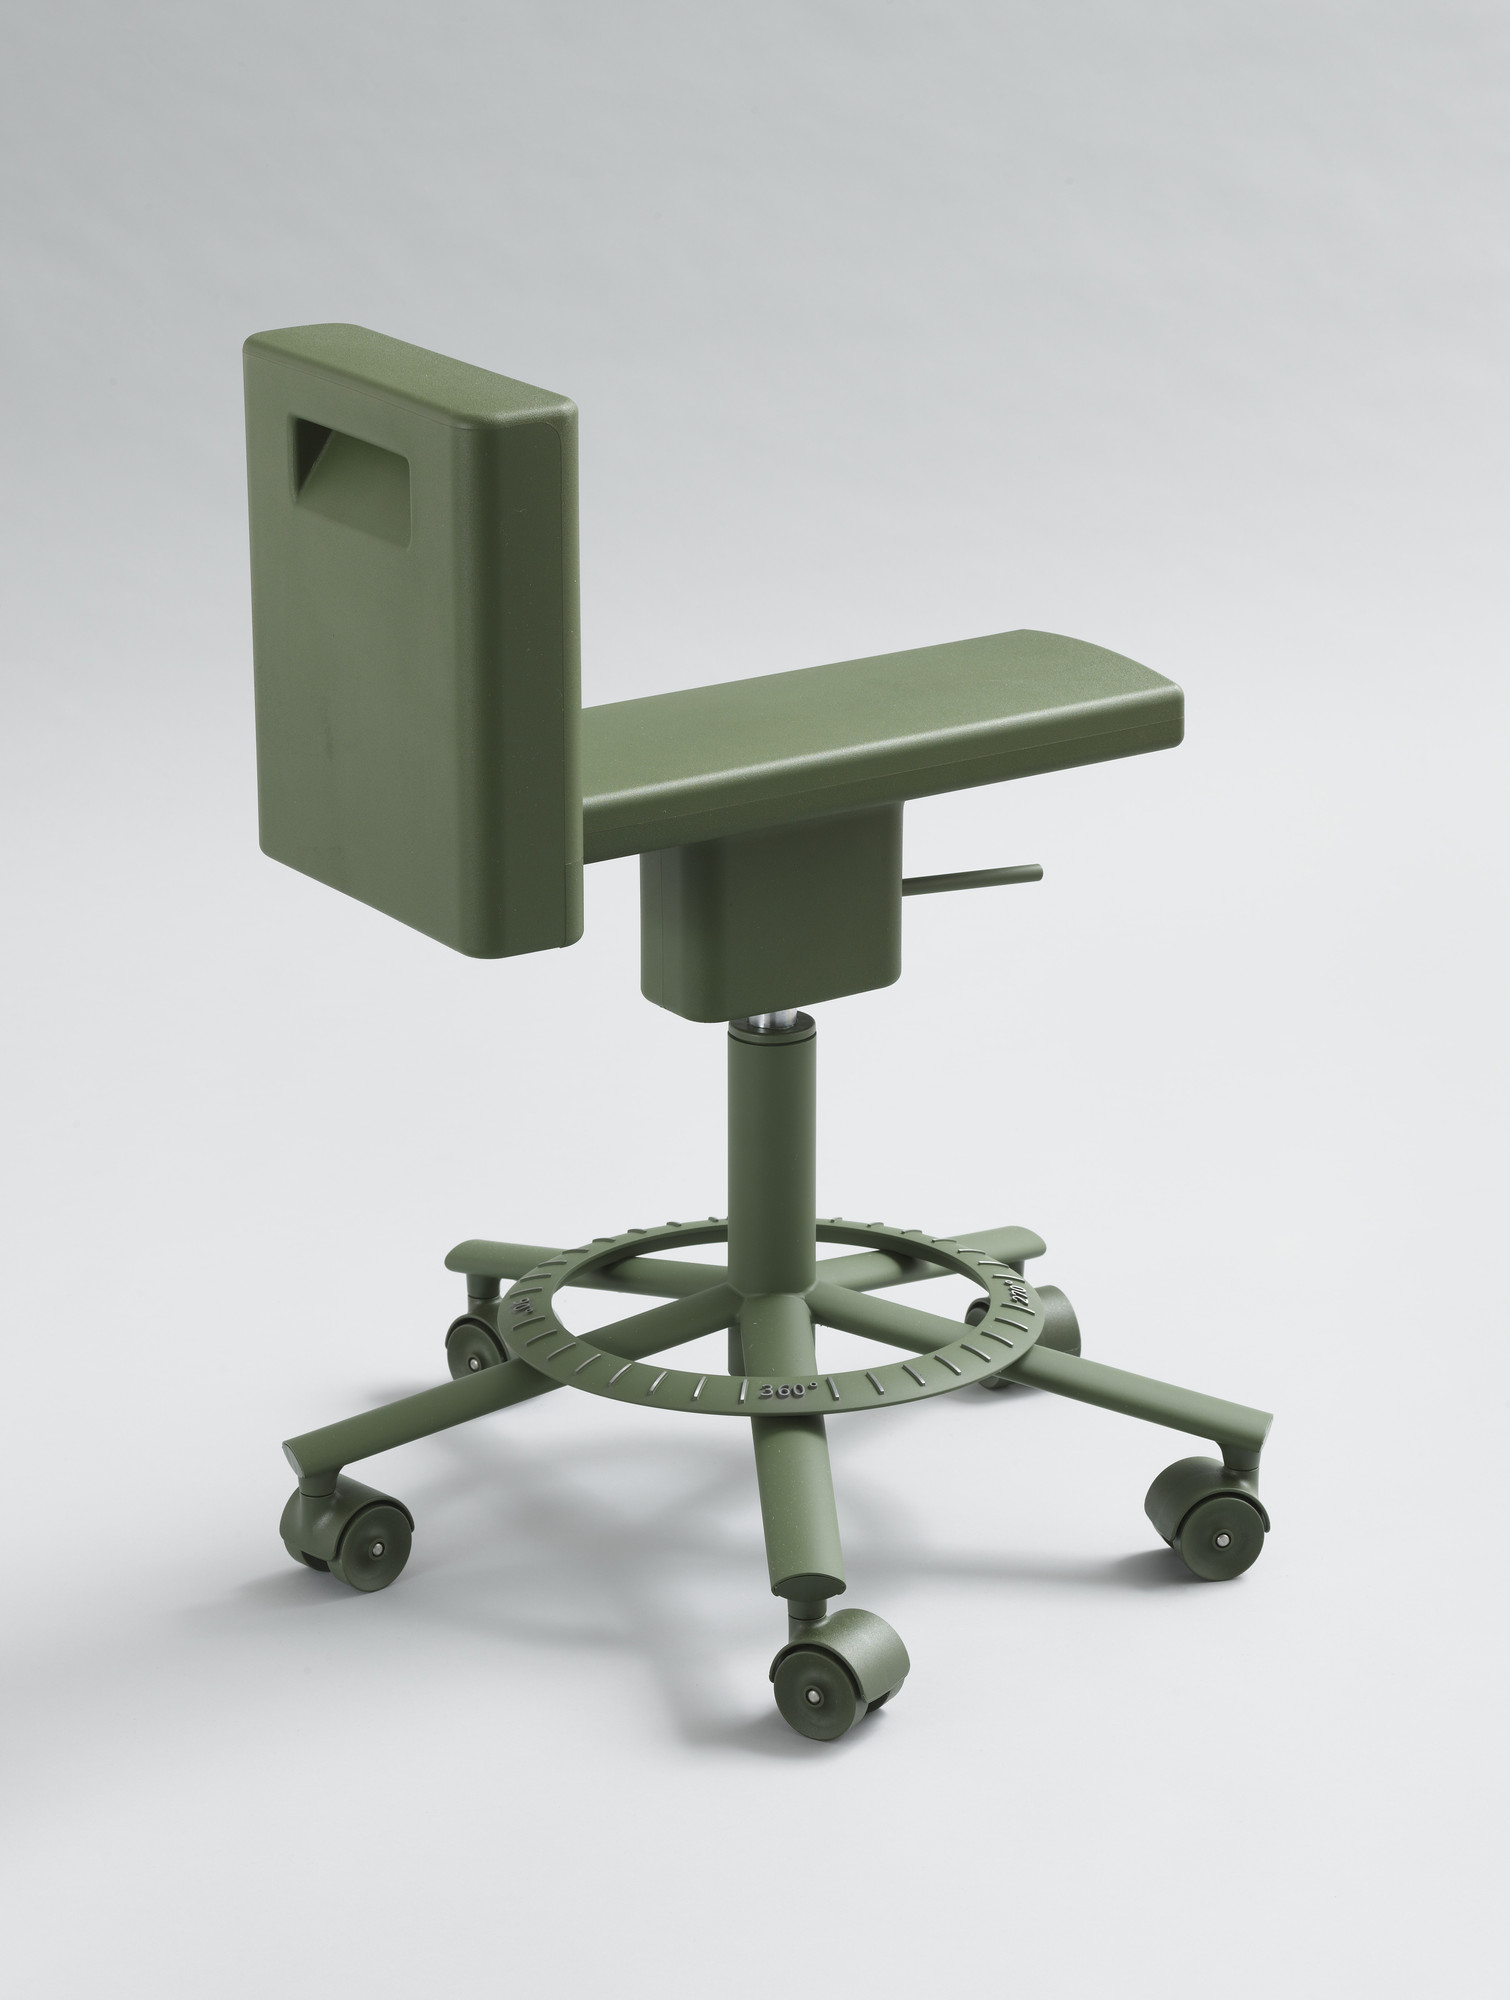 Konstantin Grcic. 360° Chair. 2009